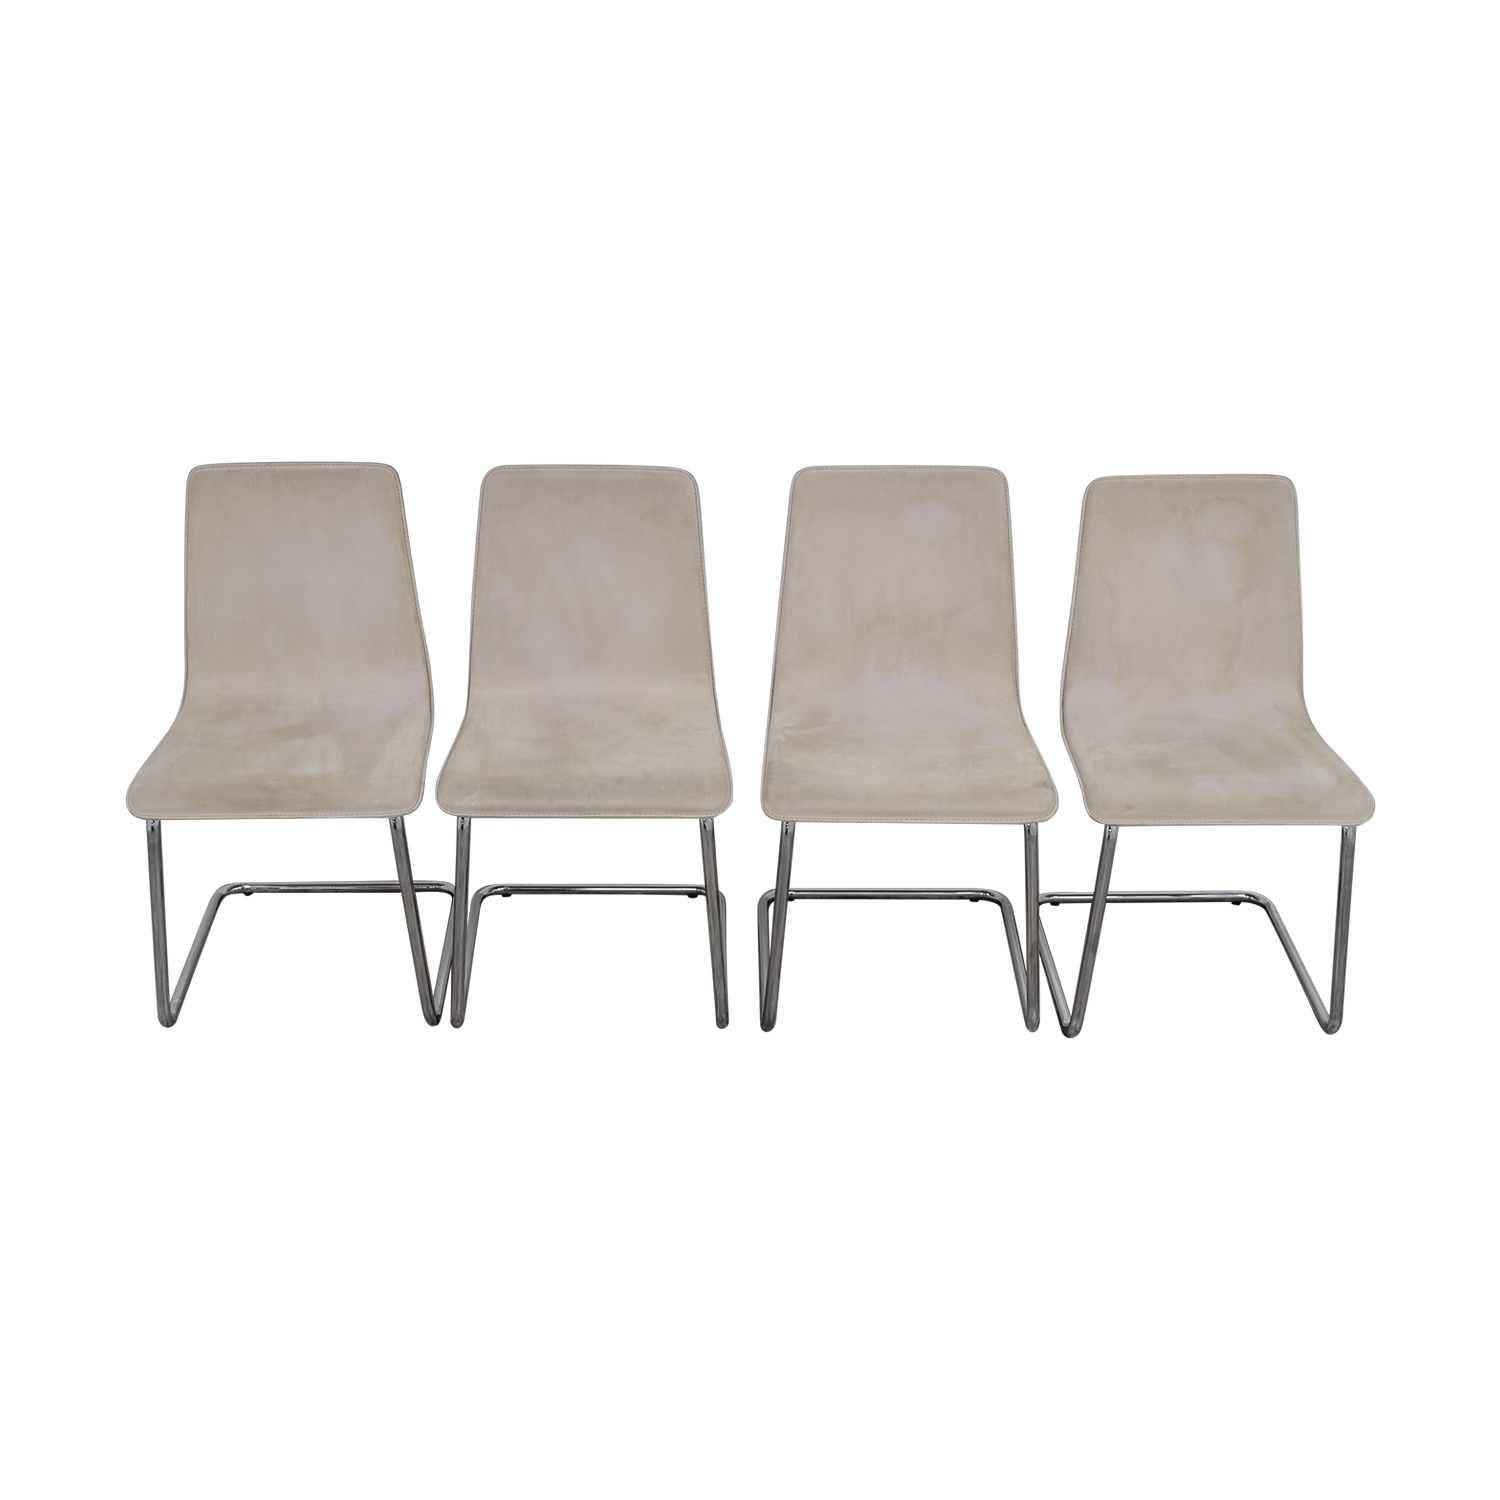 61 Off Cb2 Cb2 Pony White Tweed Chairs Chairs